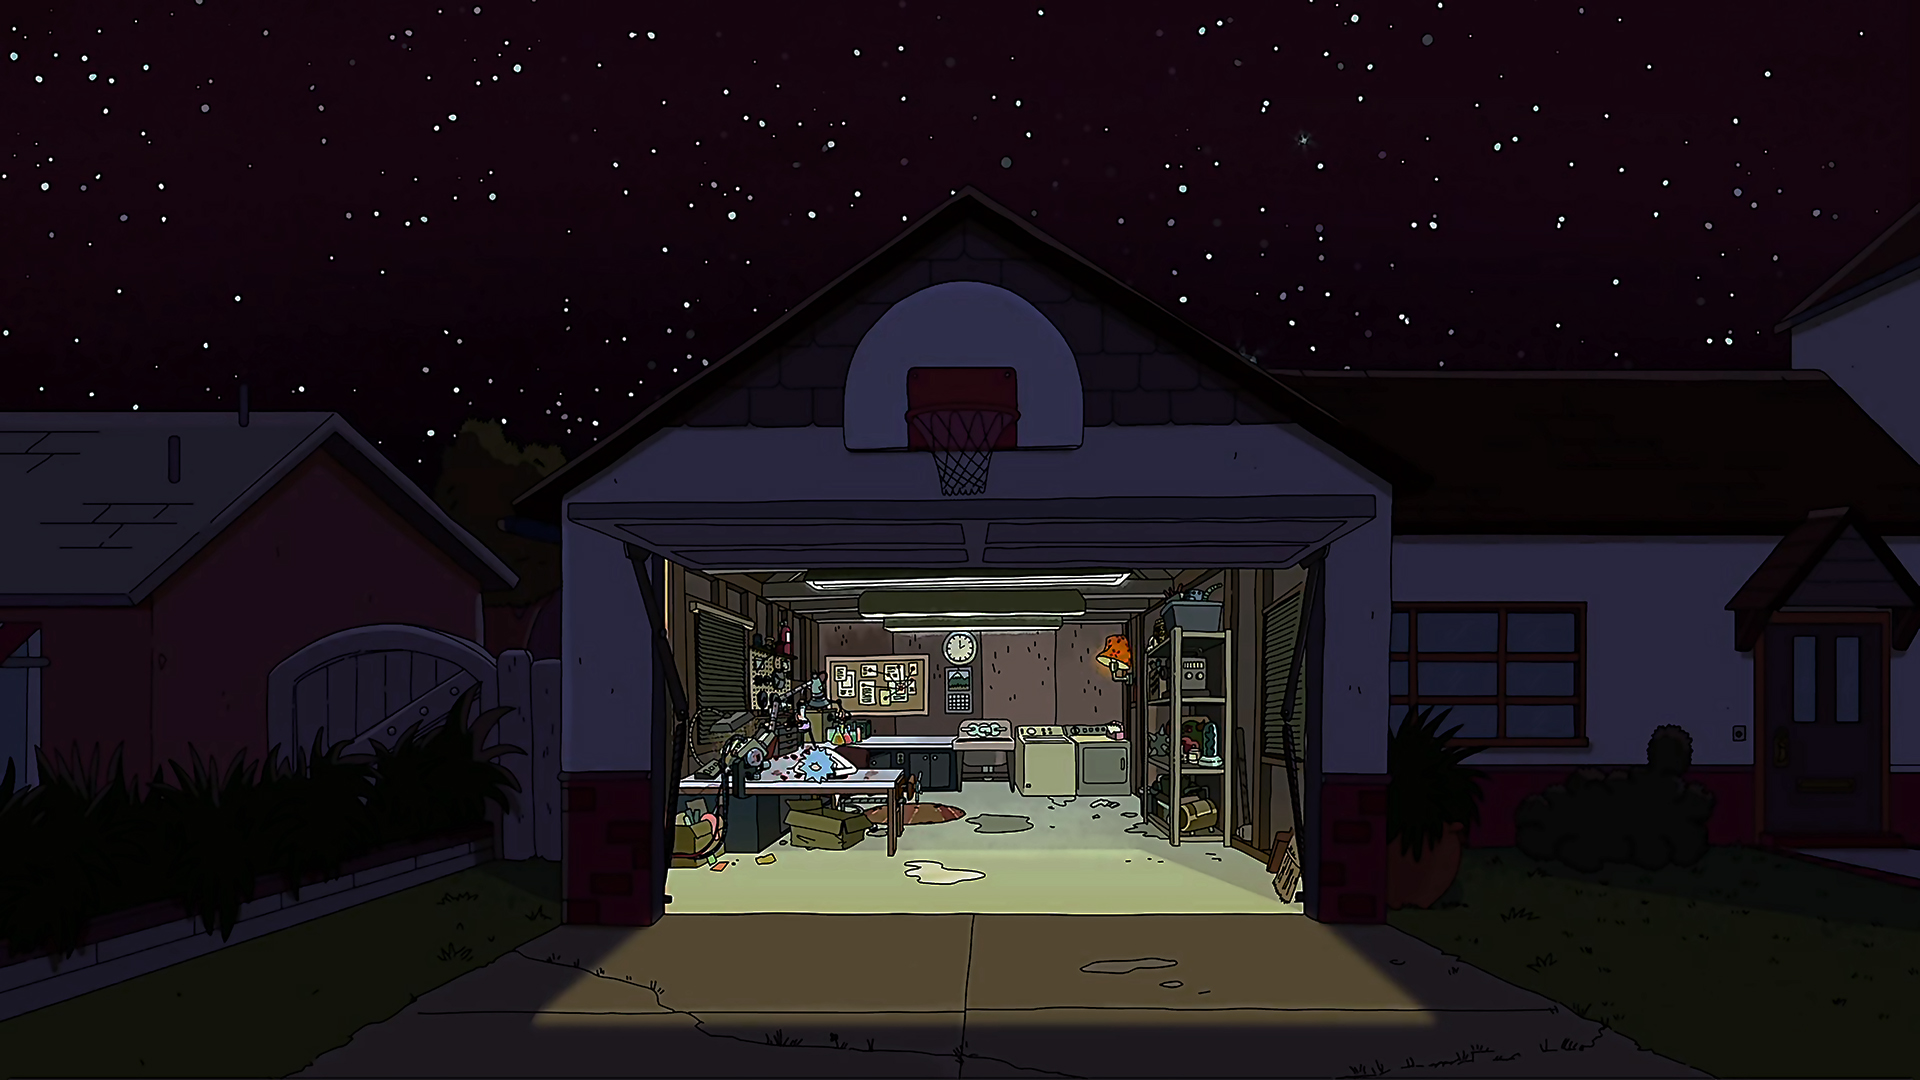 30+ Rick And Morty Garage Background Gif